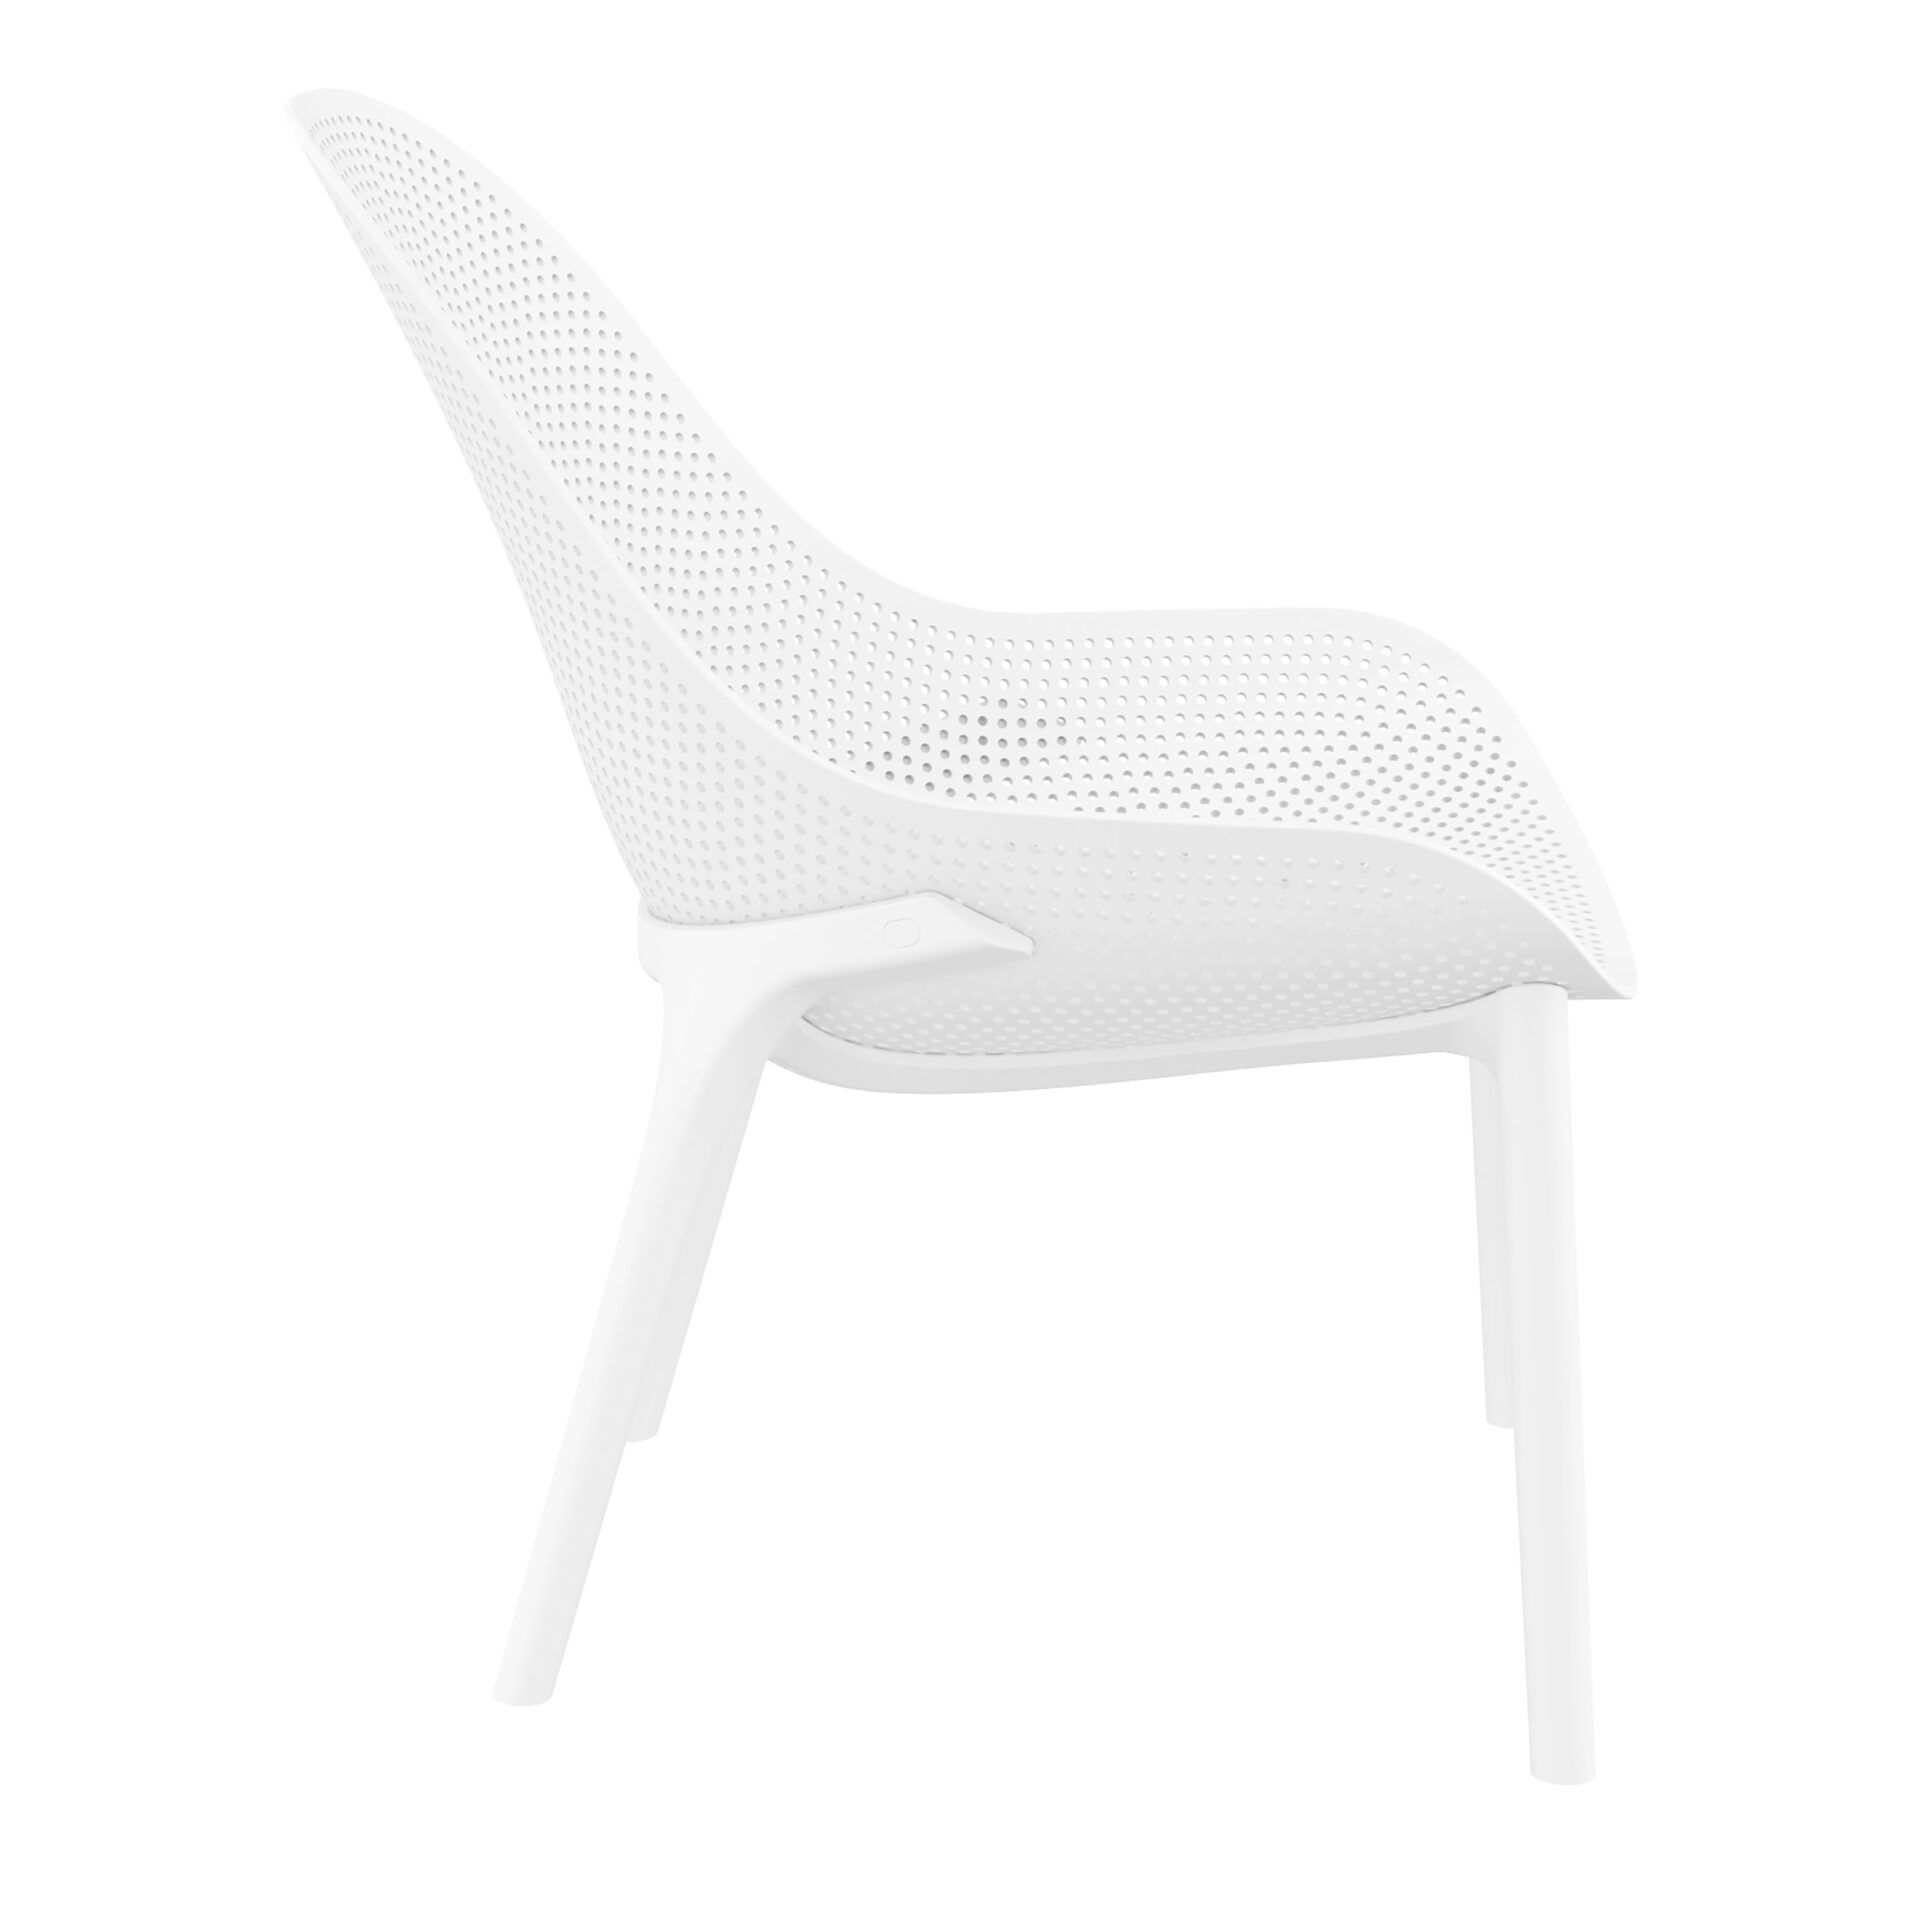 outdoor seating polypropylene sky lounge white side